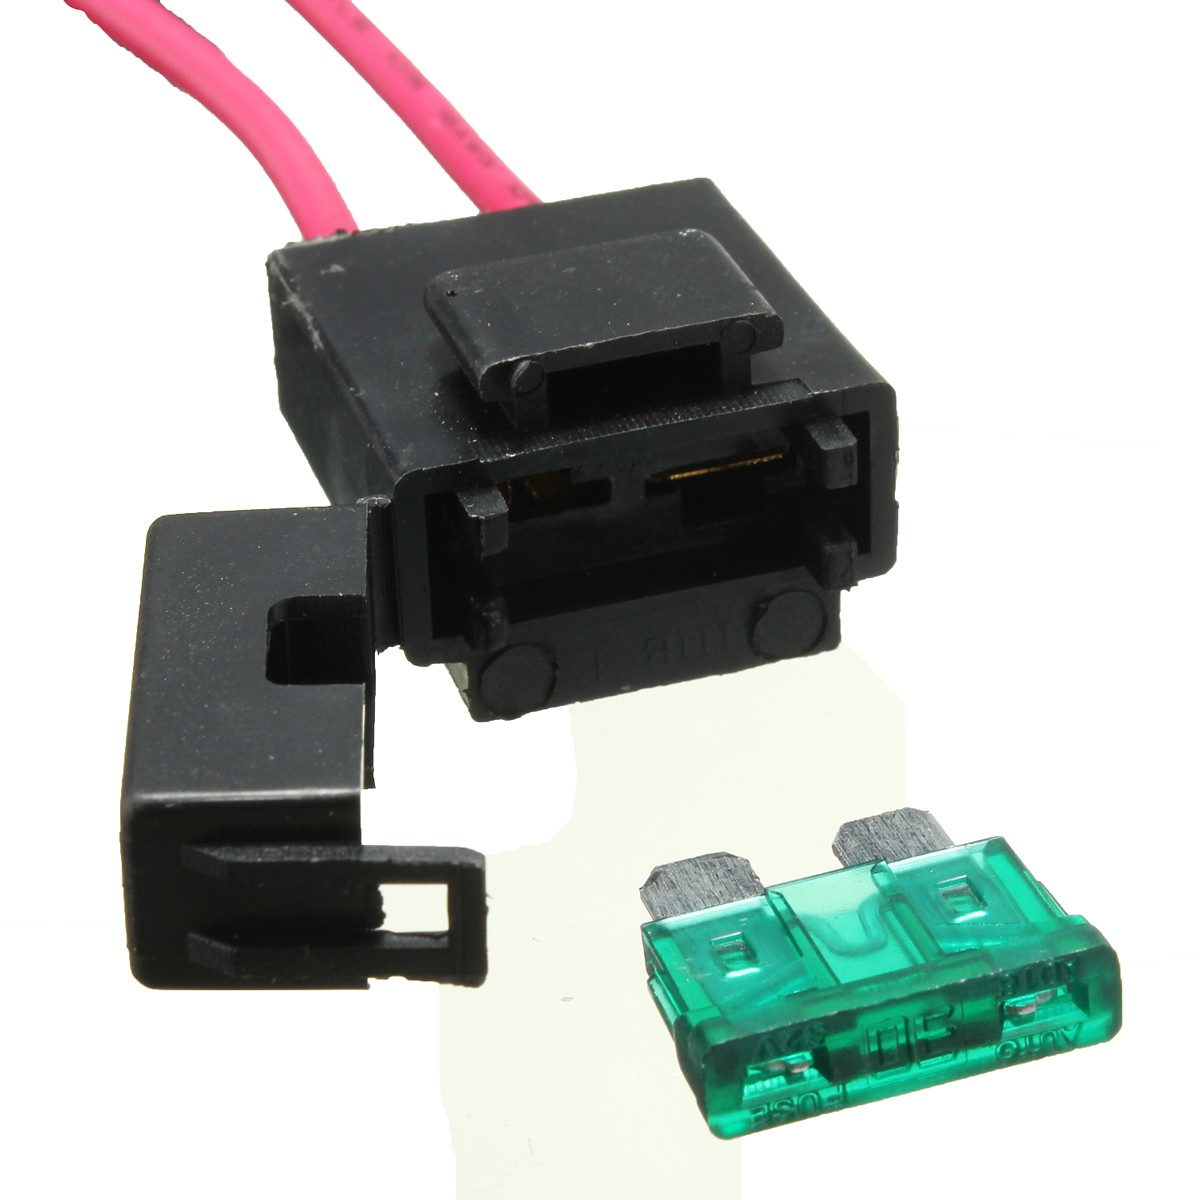 12v Wiring Harness Loom Kit Rocker Switch Relay Hid Led Light Bar Trailer Lights Diagram On Work Fog Ebay